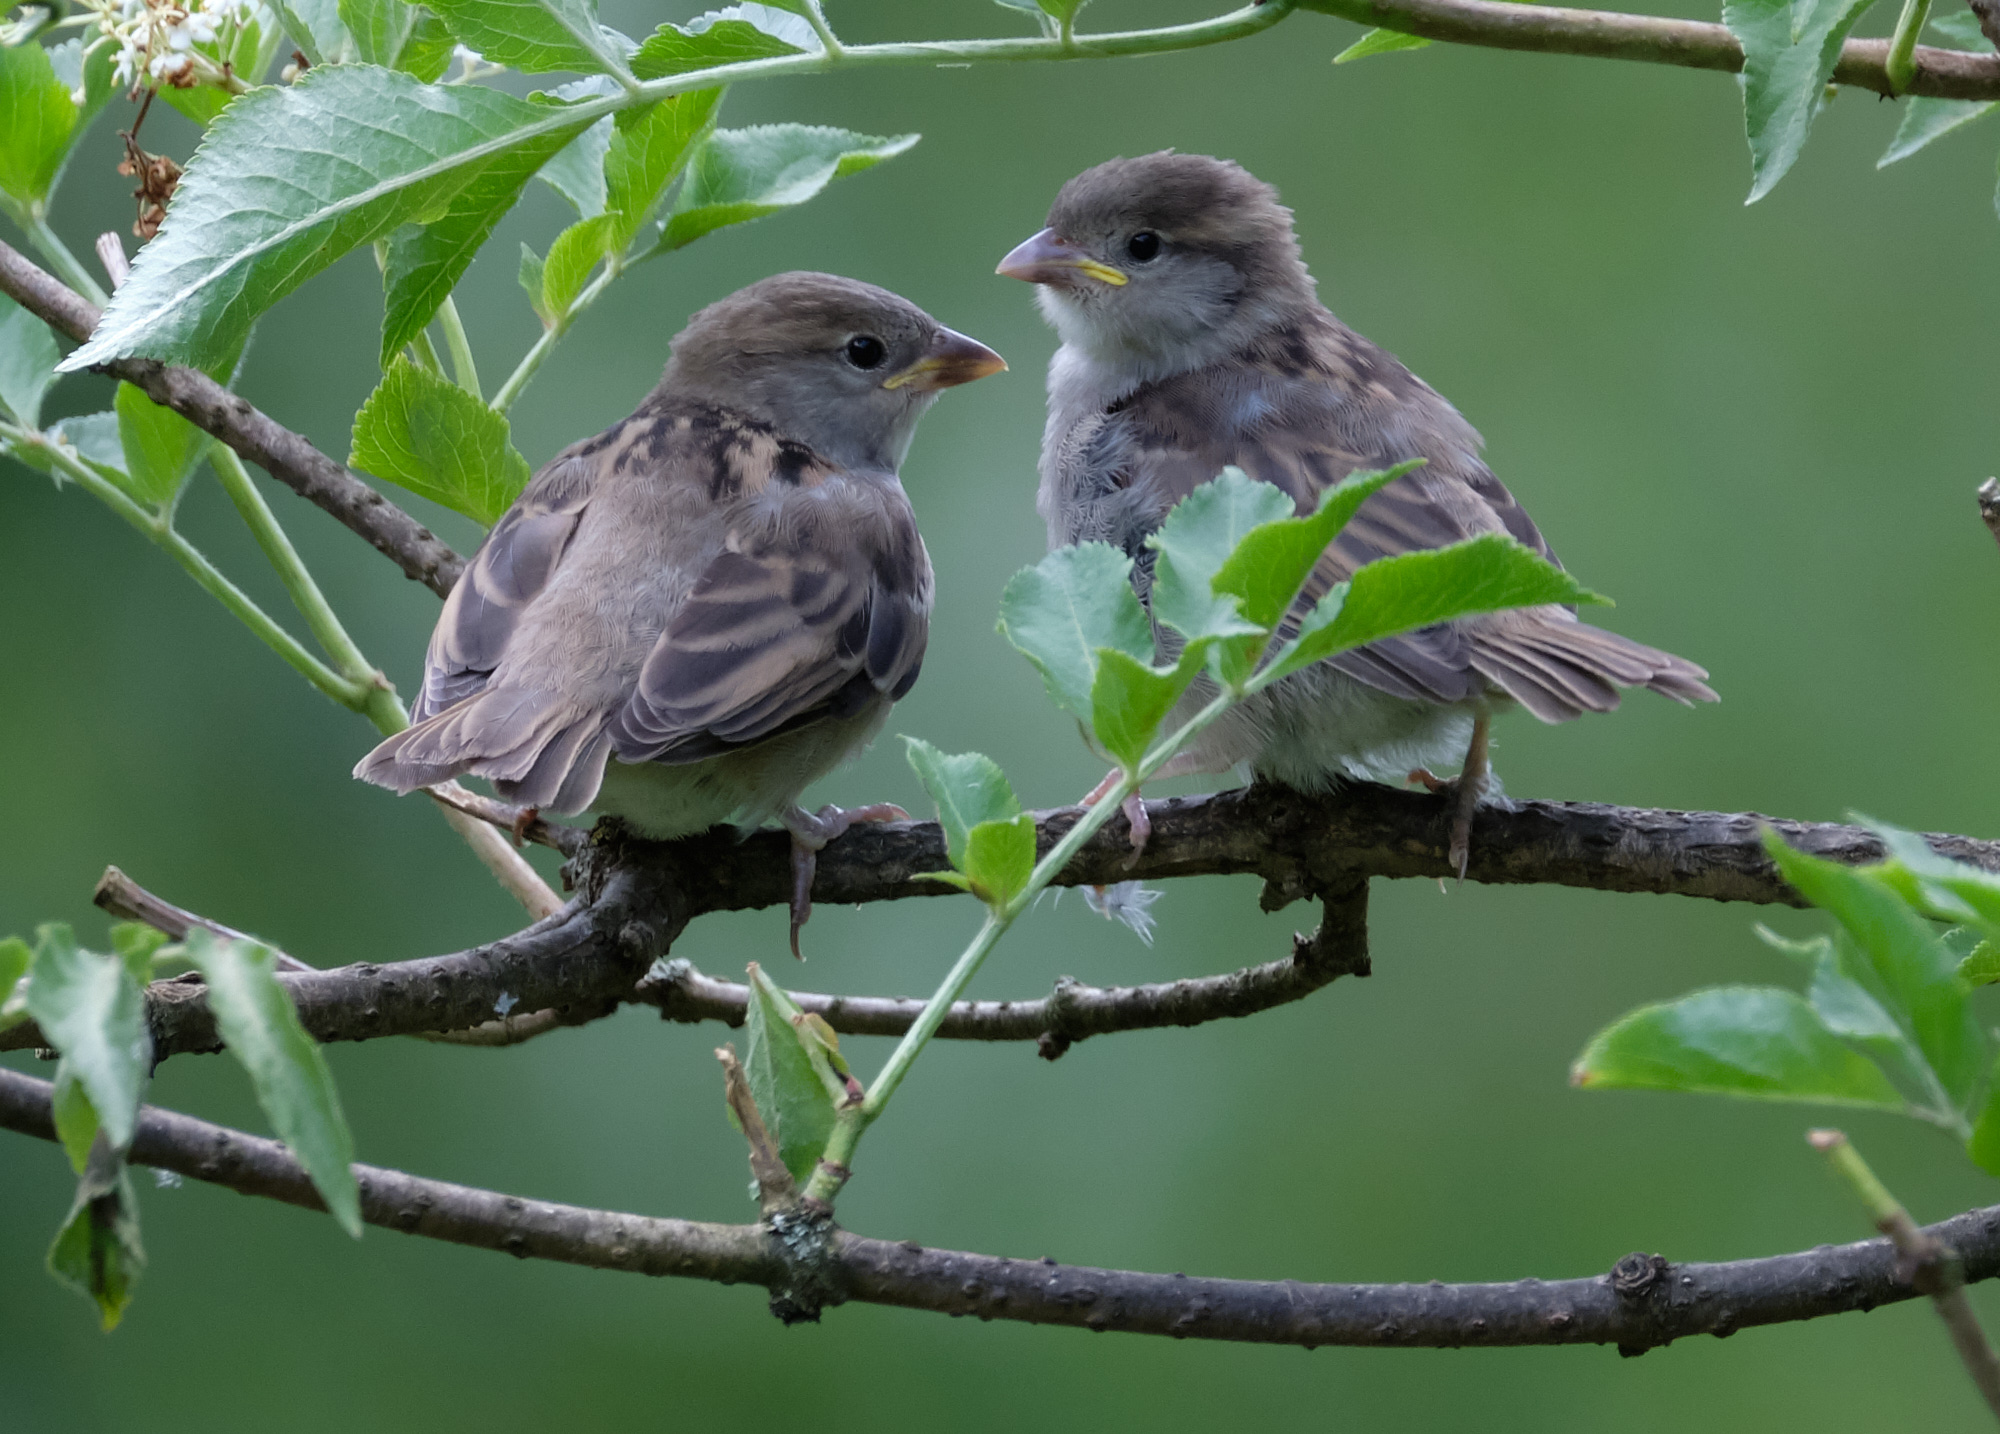 junge Haussperlinge / young house sparrows